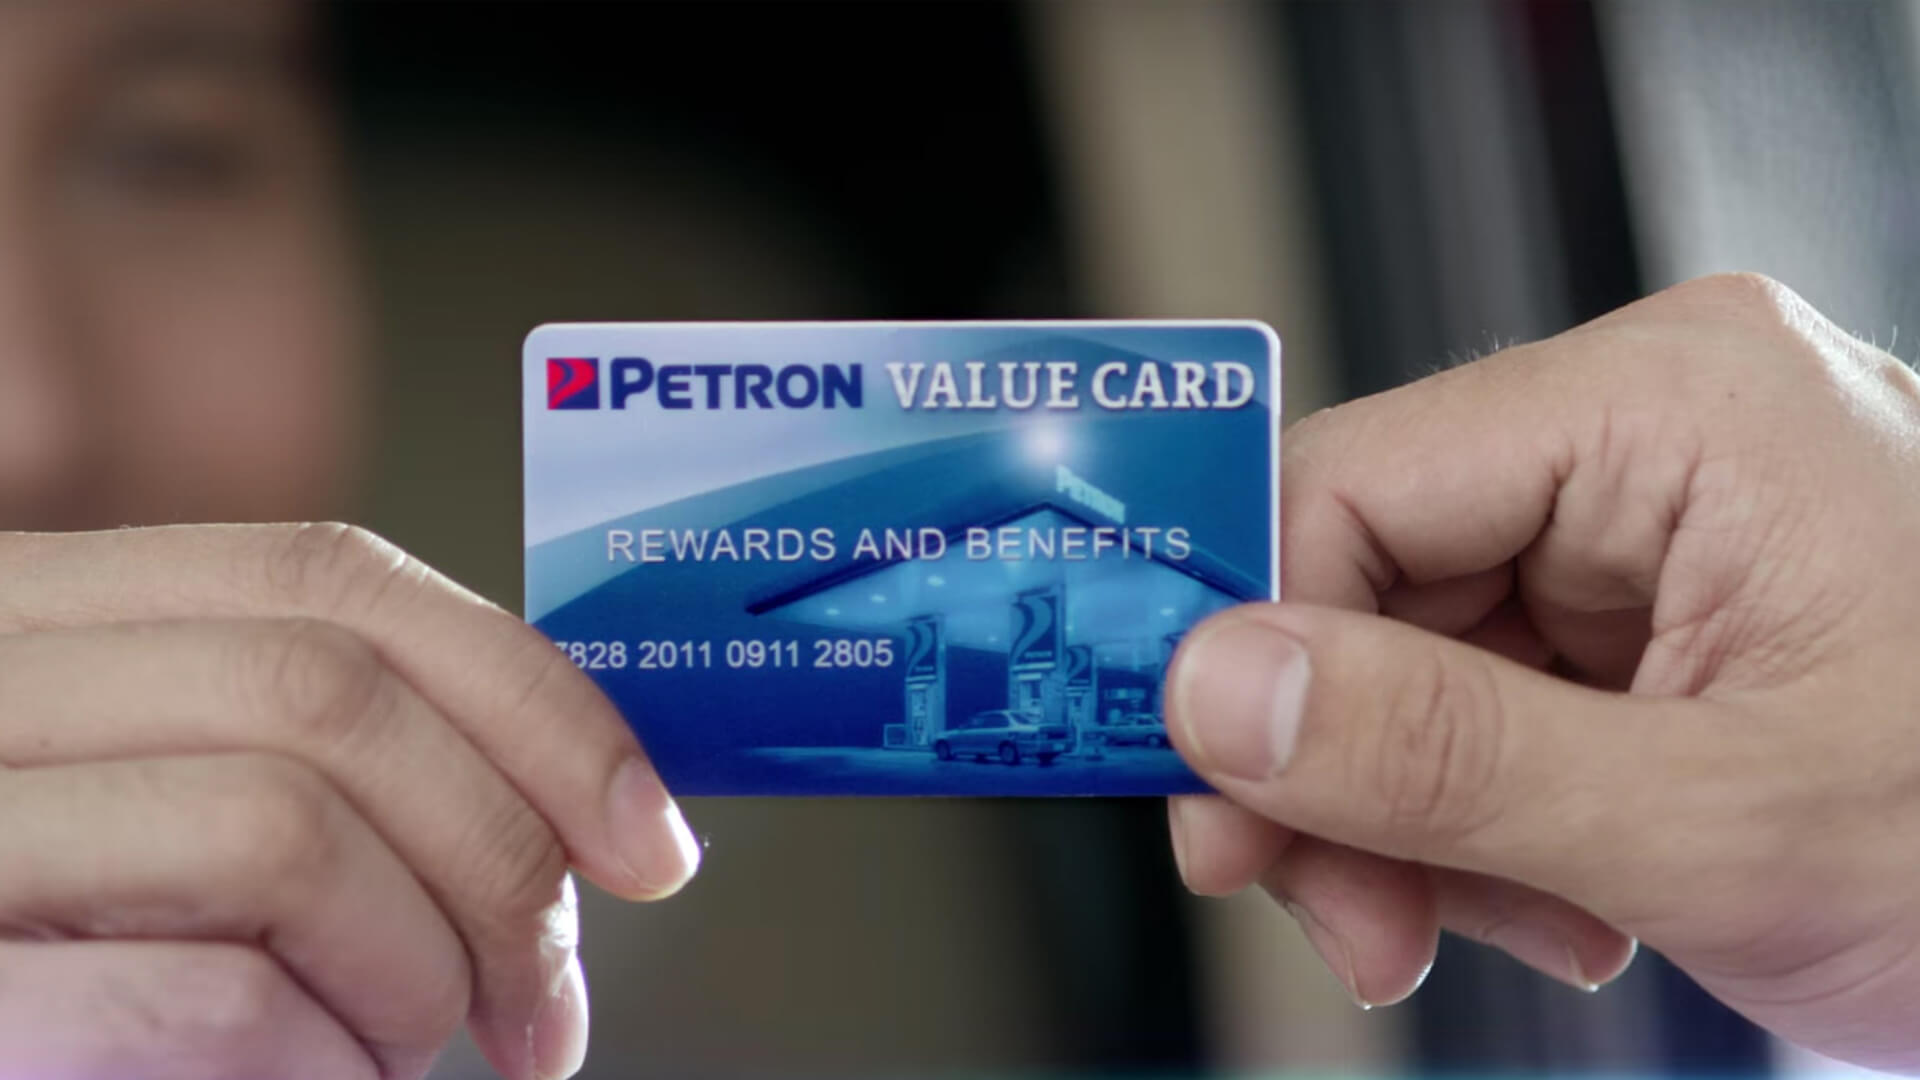 Petron Value Card: Get Your Rewards Today